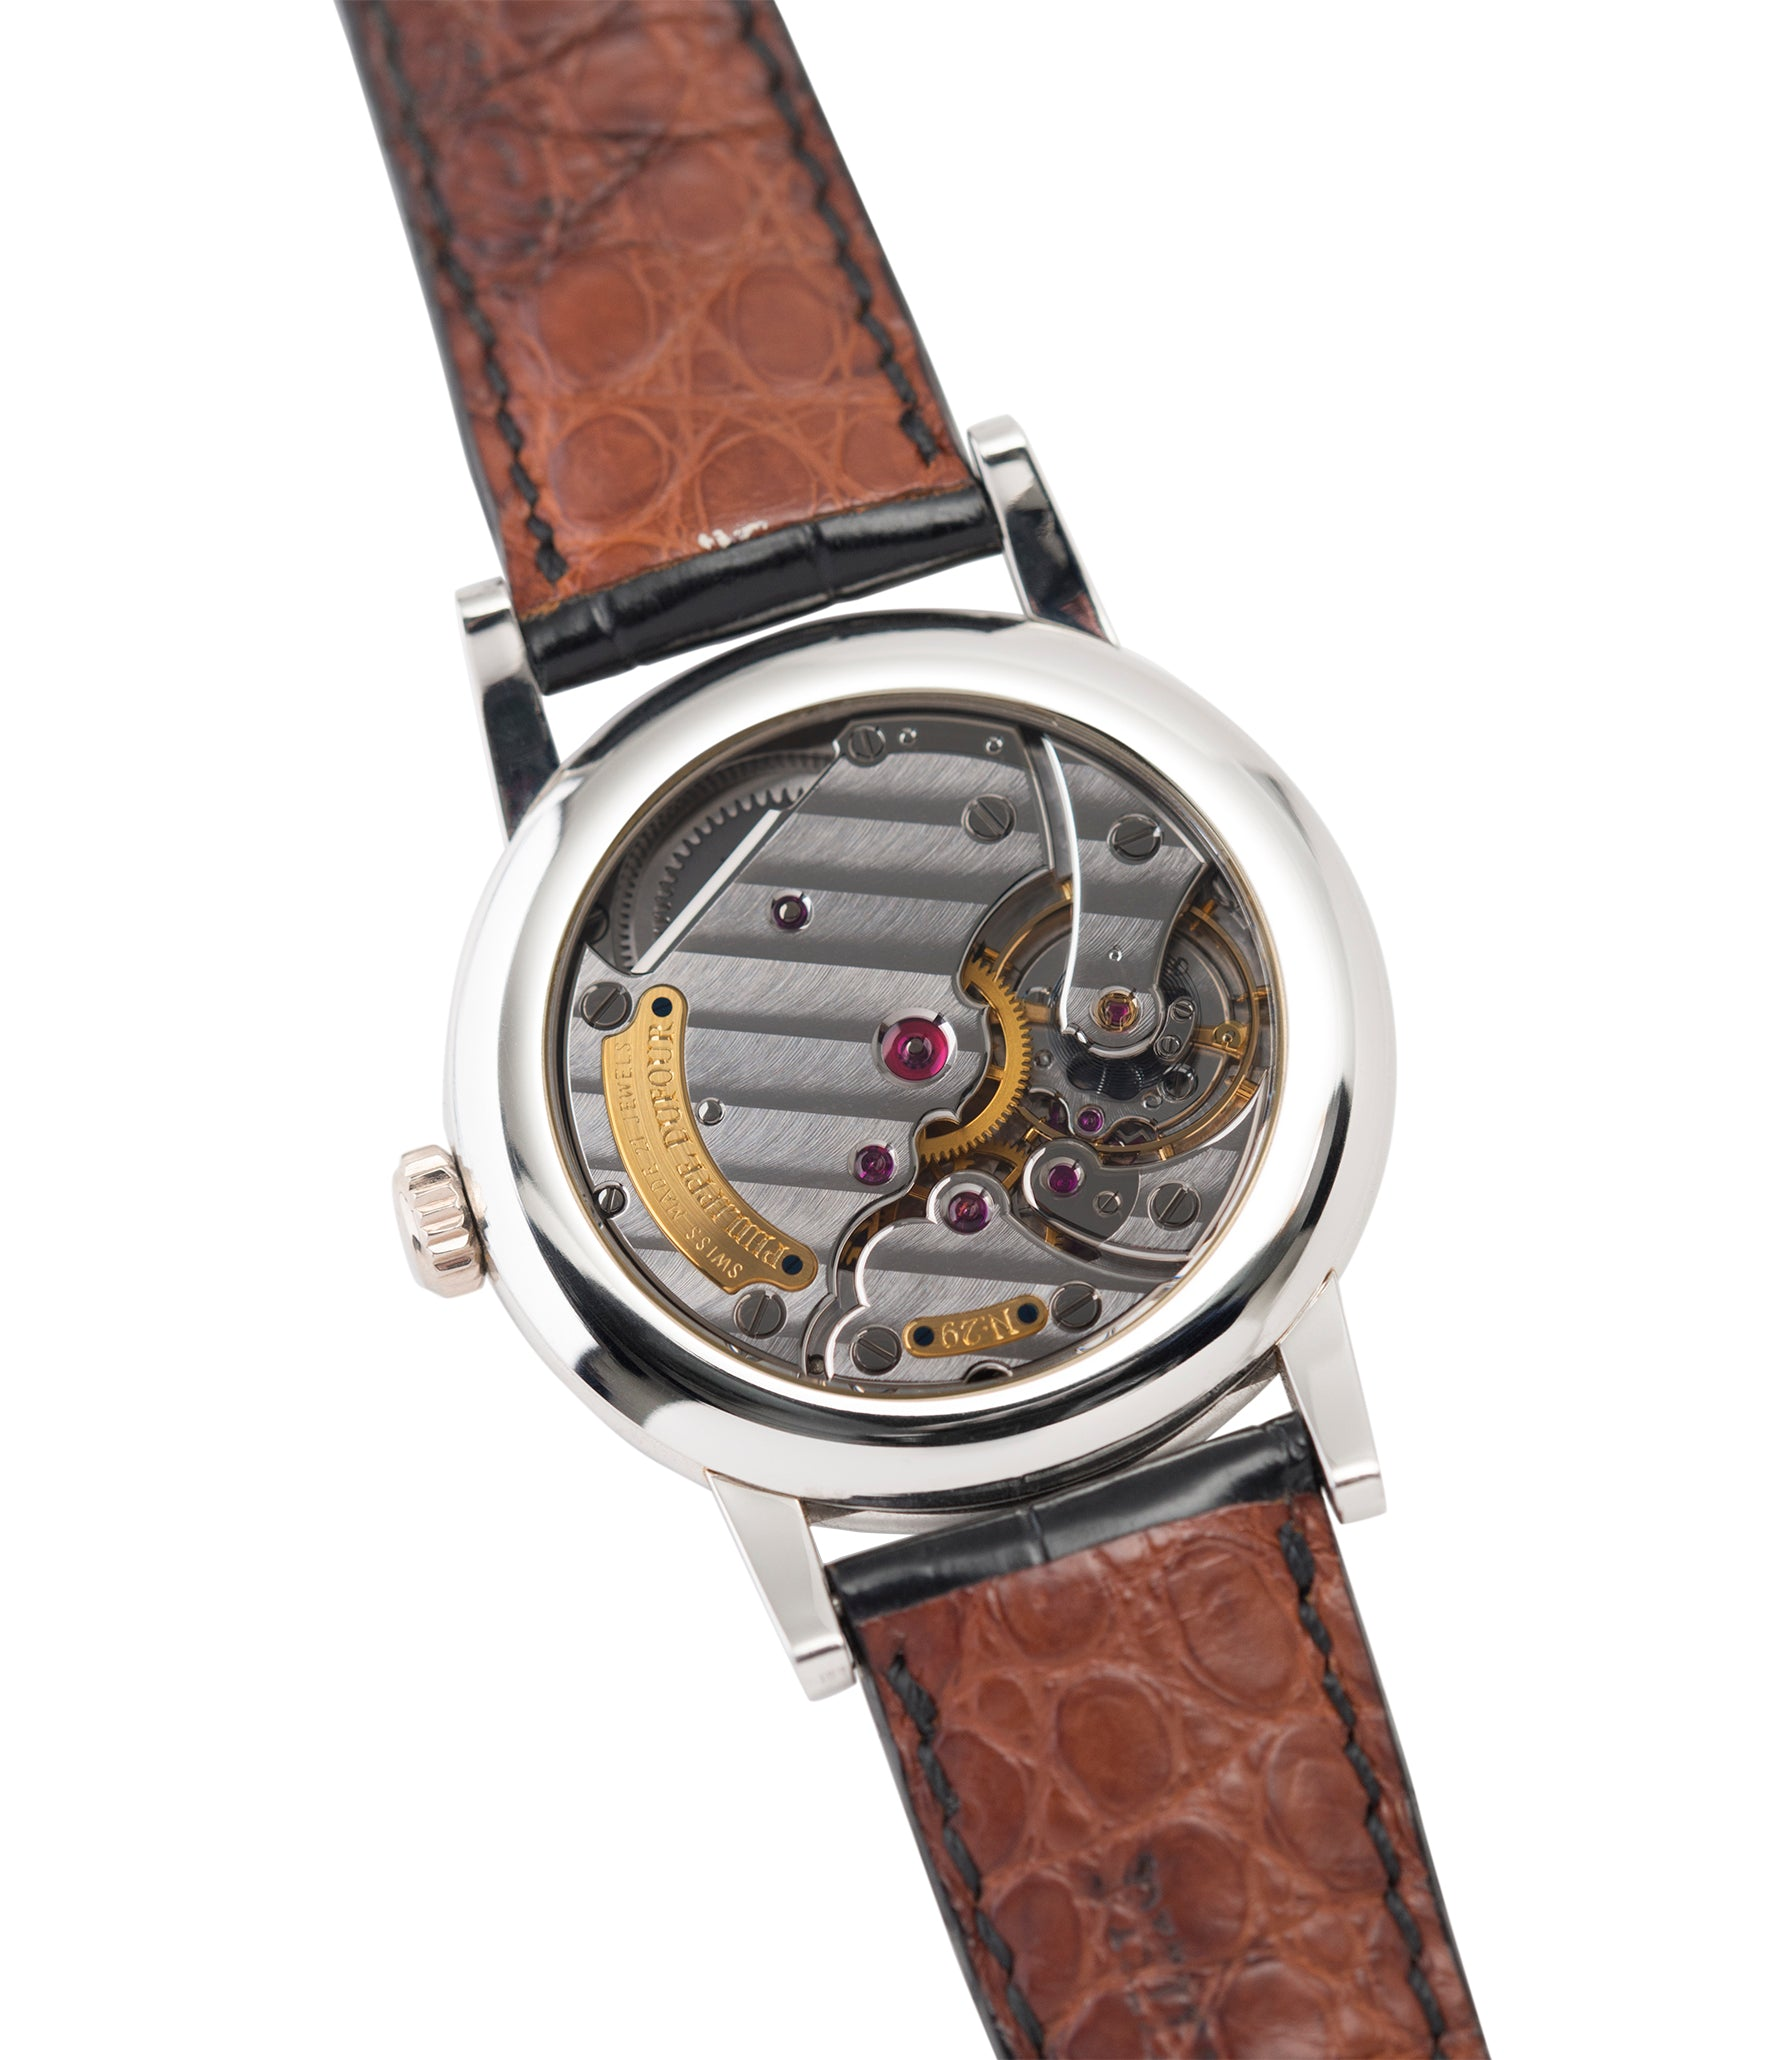 hand-finished movement Philippe Dufour Simplicity platinum time-only dress watch for sale online at A Collected Man London UK approved specialist of preowned independent watchmakers